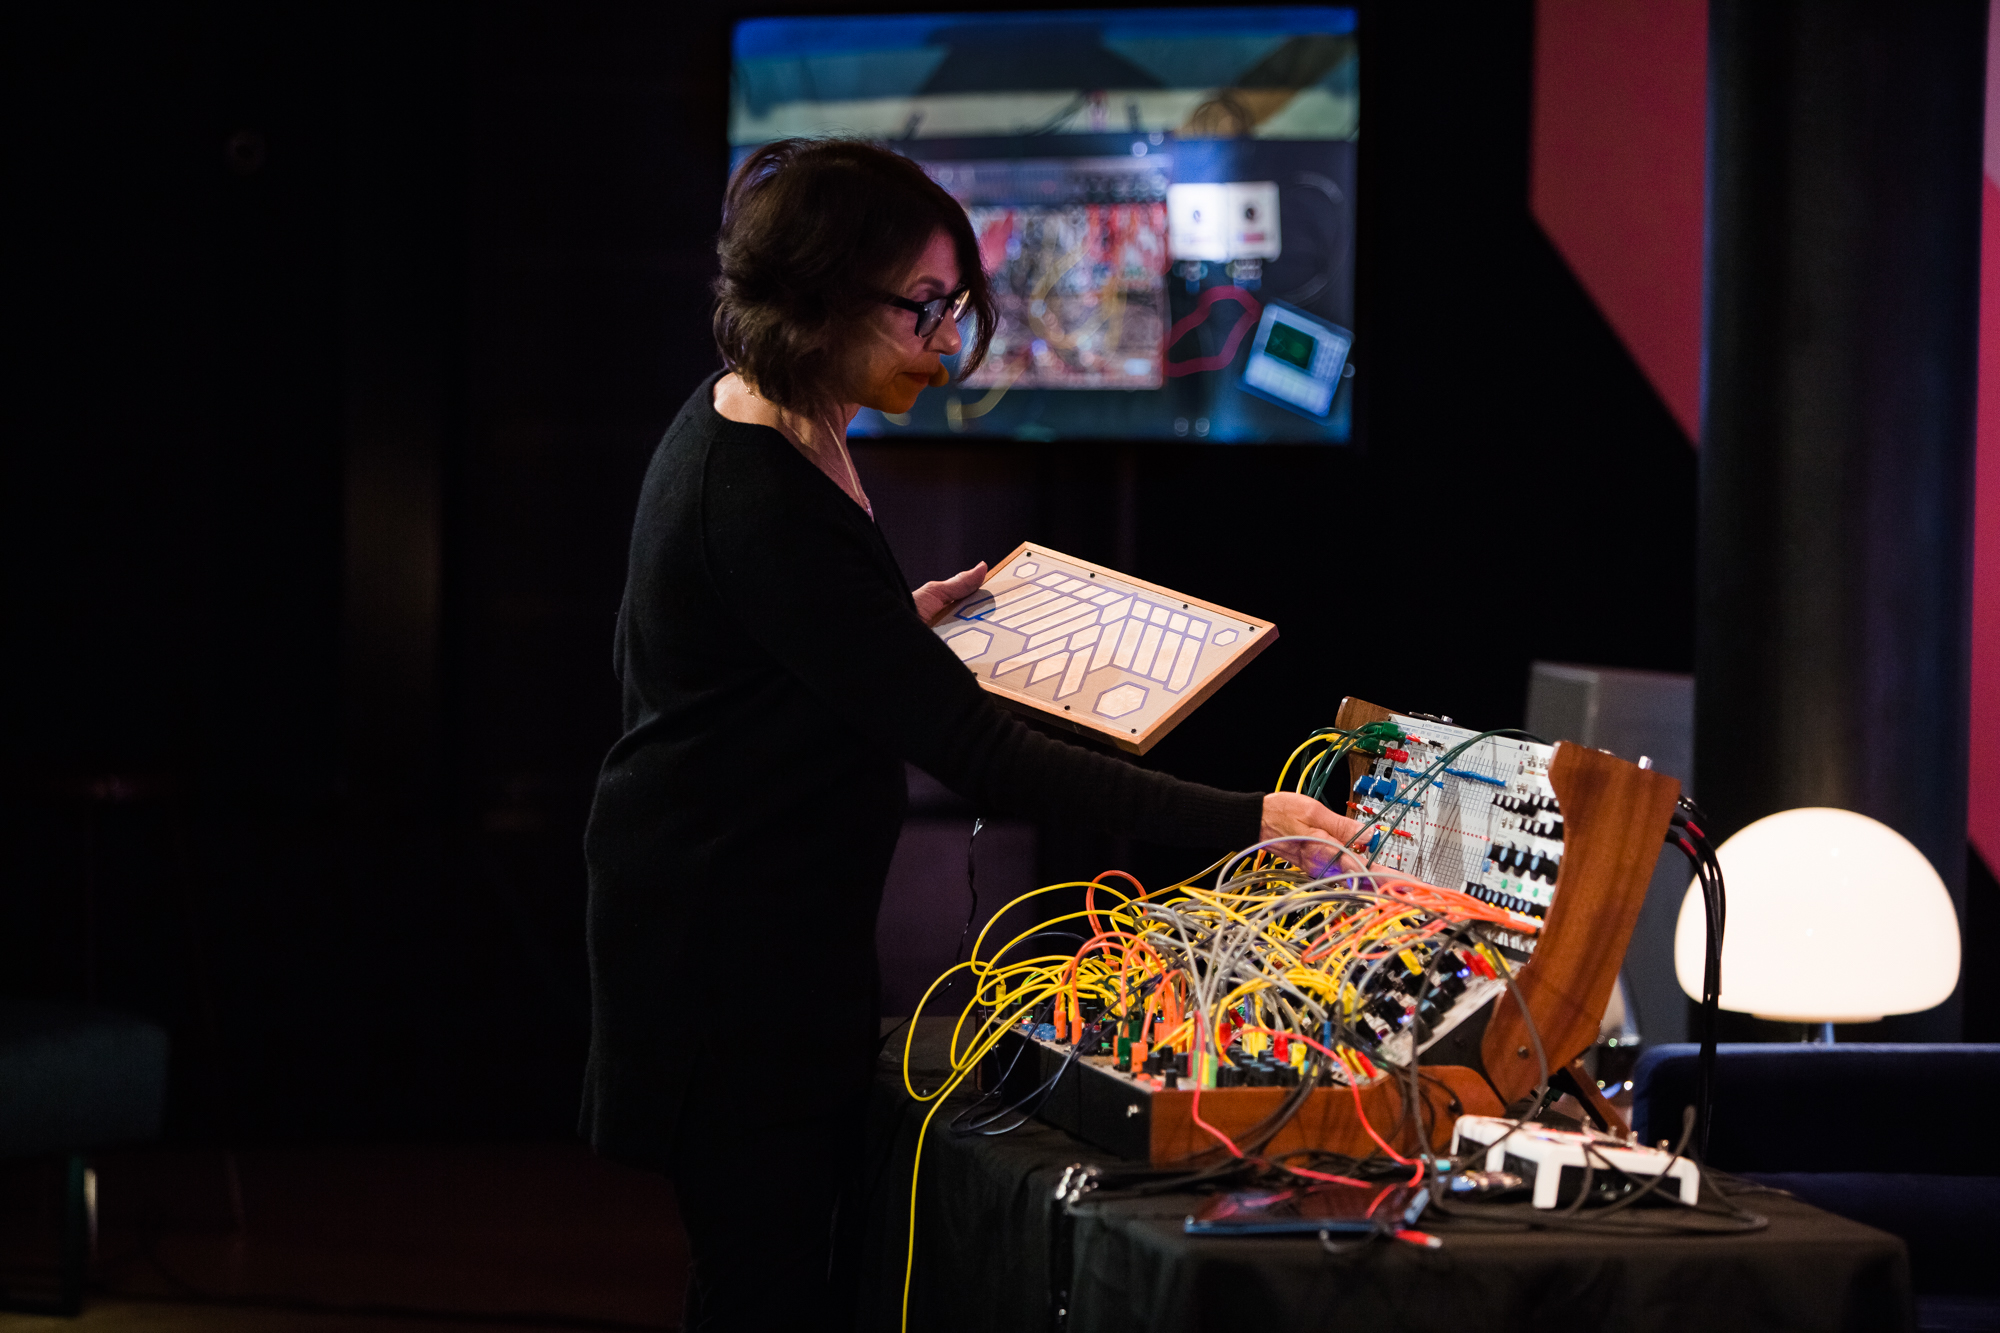 Suzanne Ciani at Red Bull Music Academy